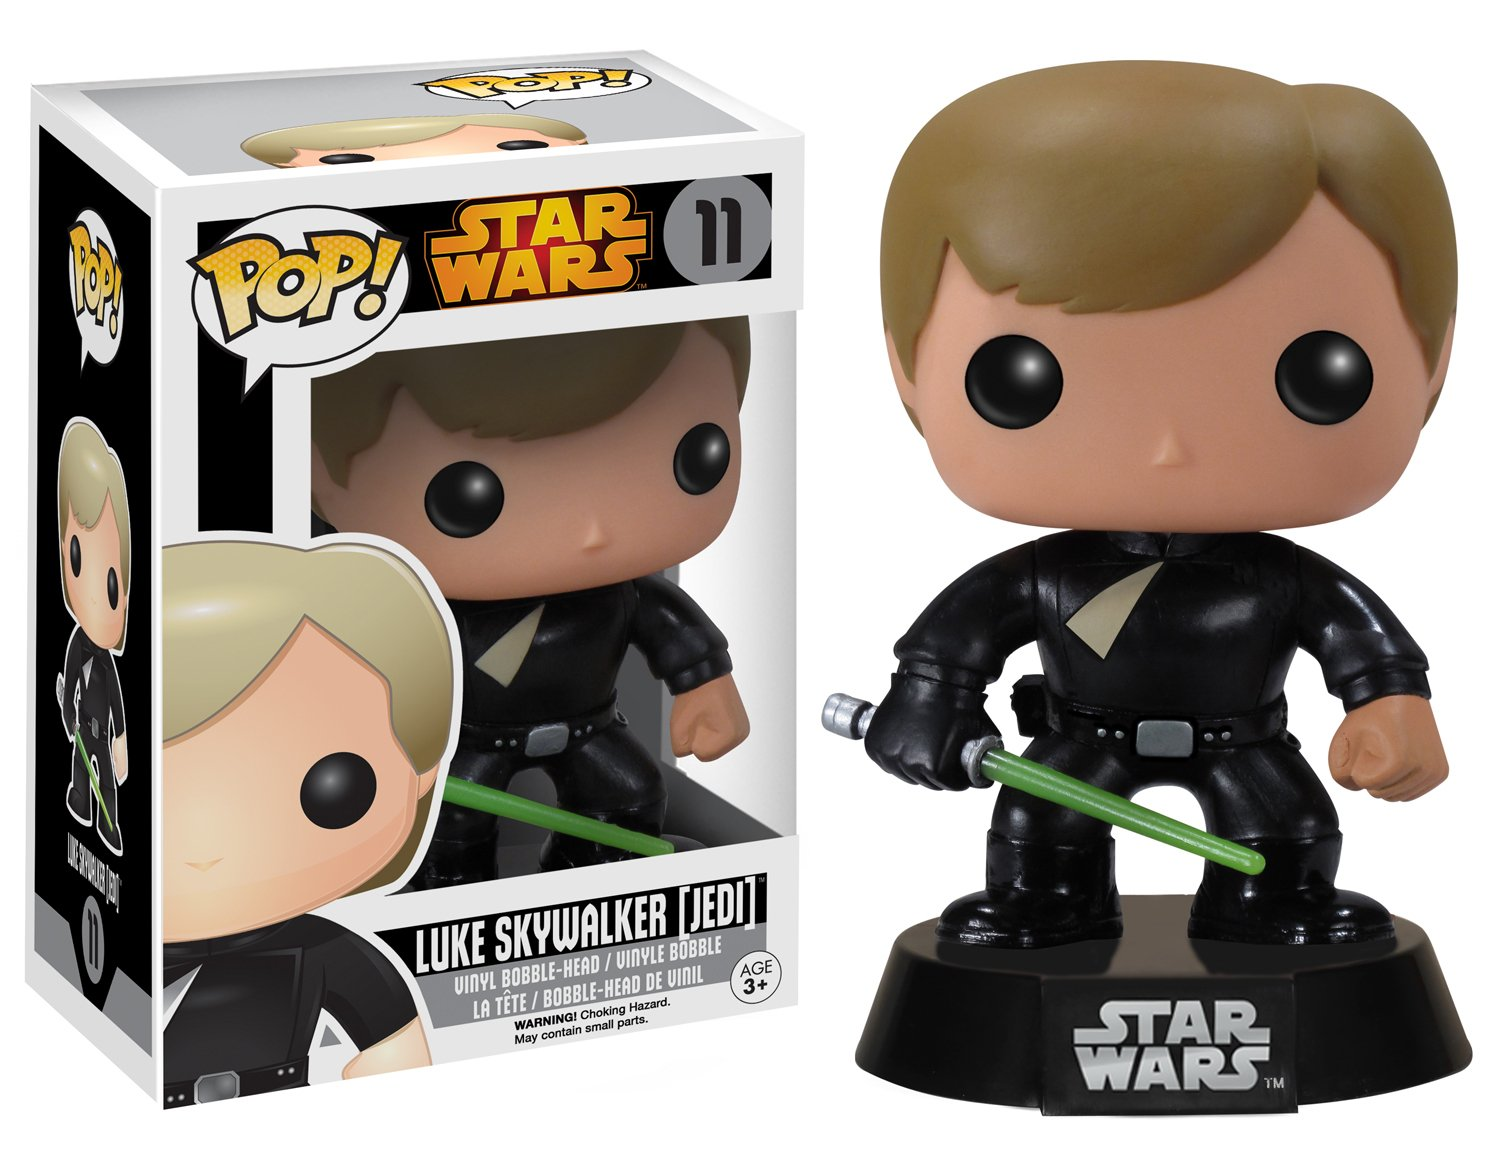 POP! Star Wars 011: Luke Skywalker (Jedi)